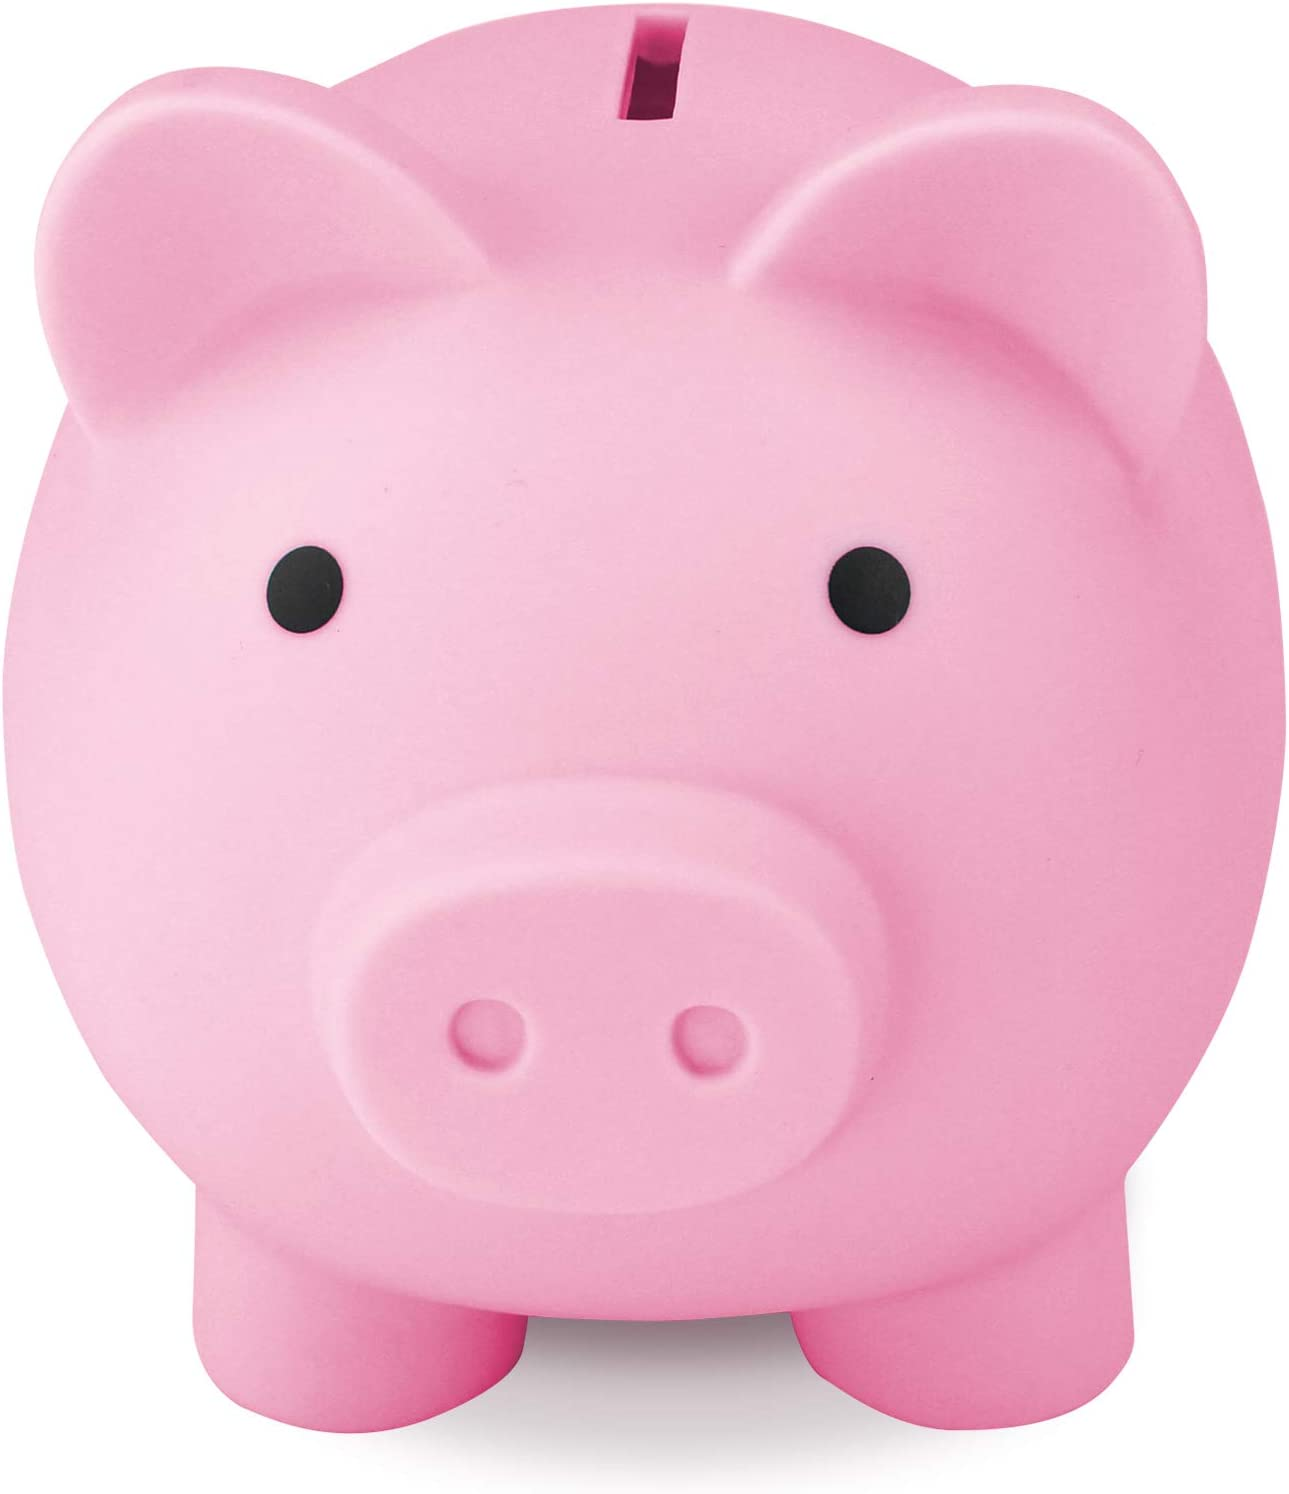 Sikaye Cute Piggy Bank Blue Best Gift for Kids Children Coin Bank Plastic Pig Money Bank Save for Coins Great Gift for Boys /& Girls